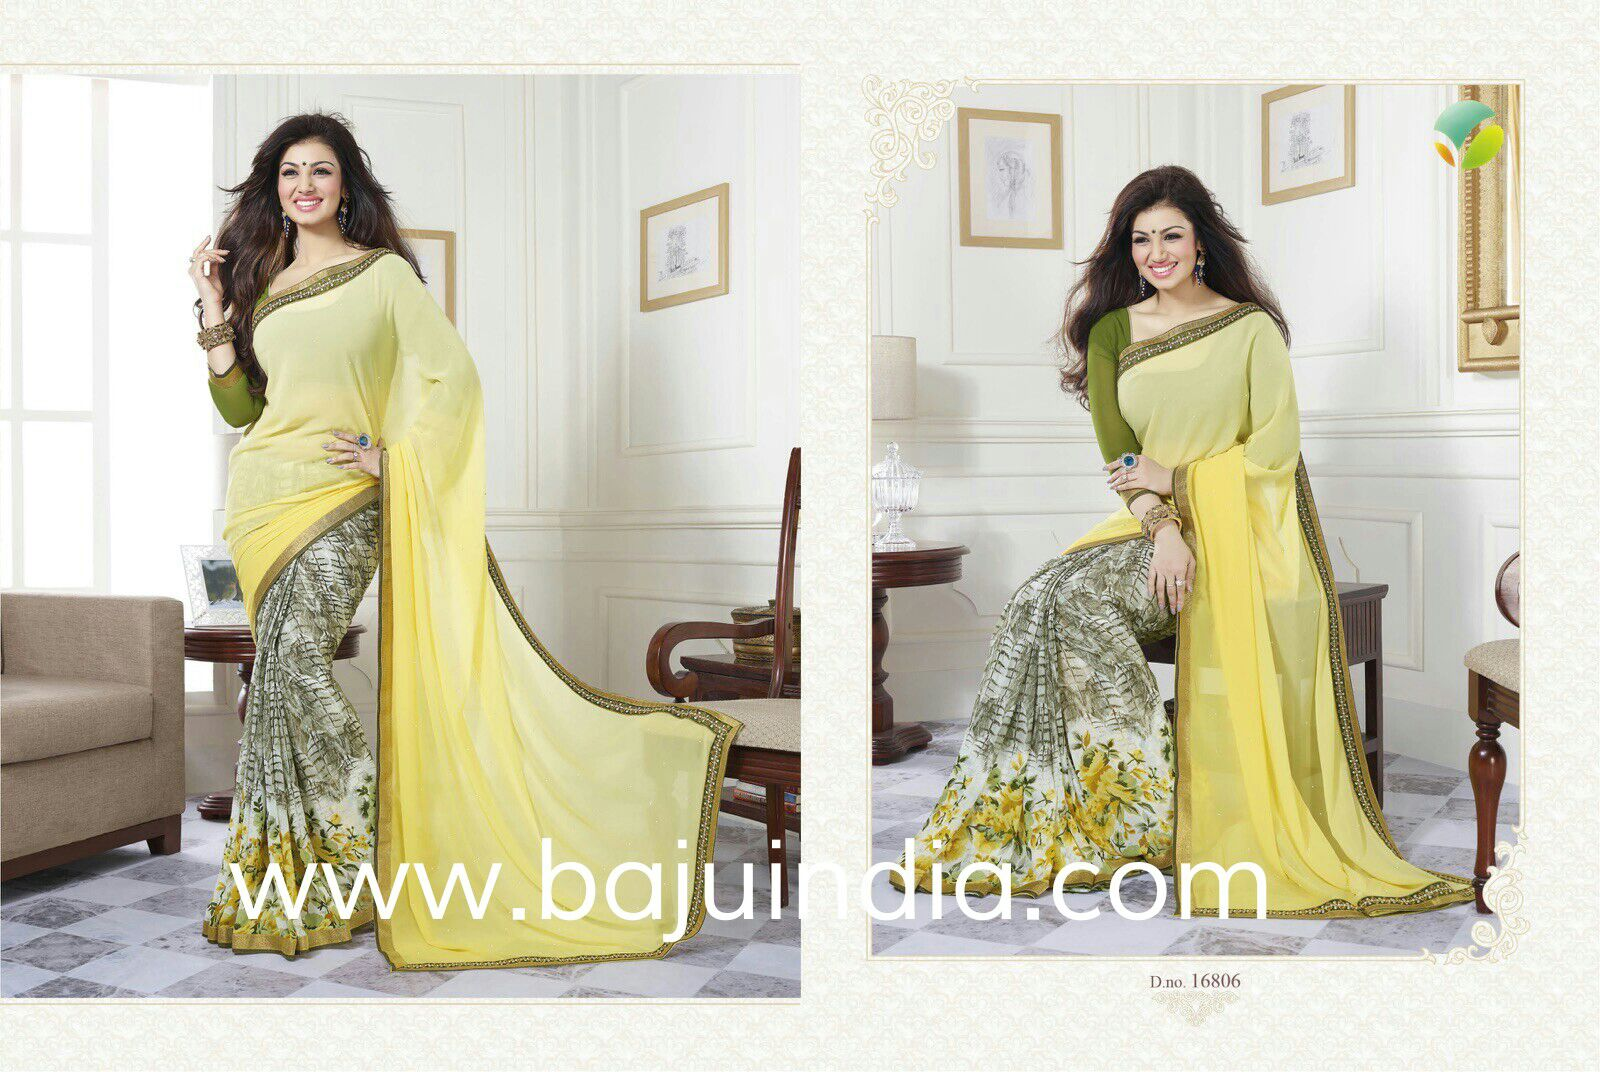 D.no.16806 - Baju India Muslim - Baju India Modern - Baju Khas India - Baju Adat India - Sari India Terbaru - Sari India Muslim - Baju Kerajaan India - Baju Salwaar India